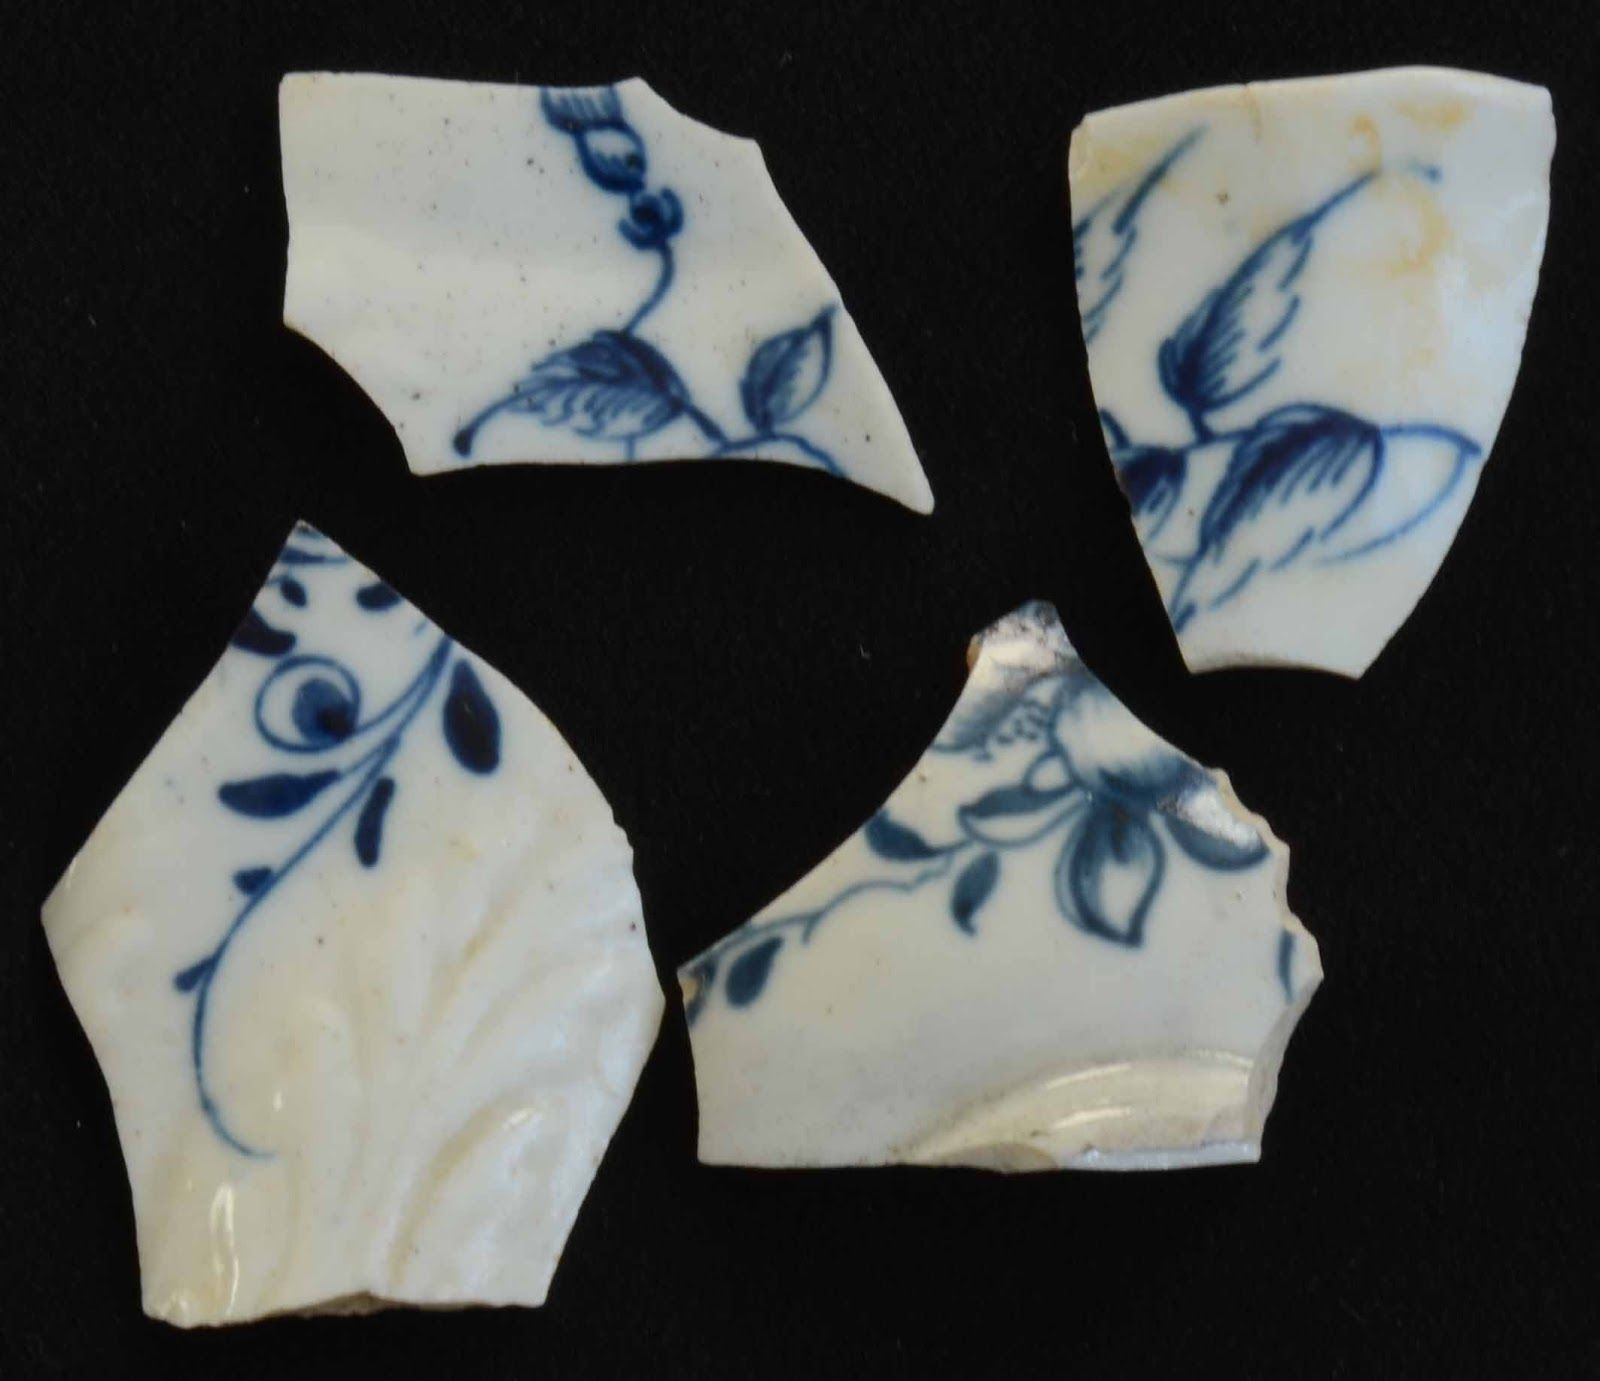 from Bode dating pottery shards